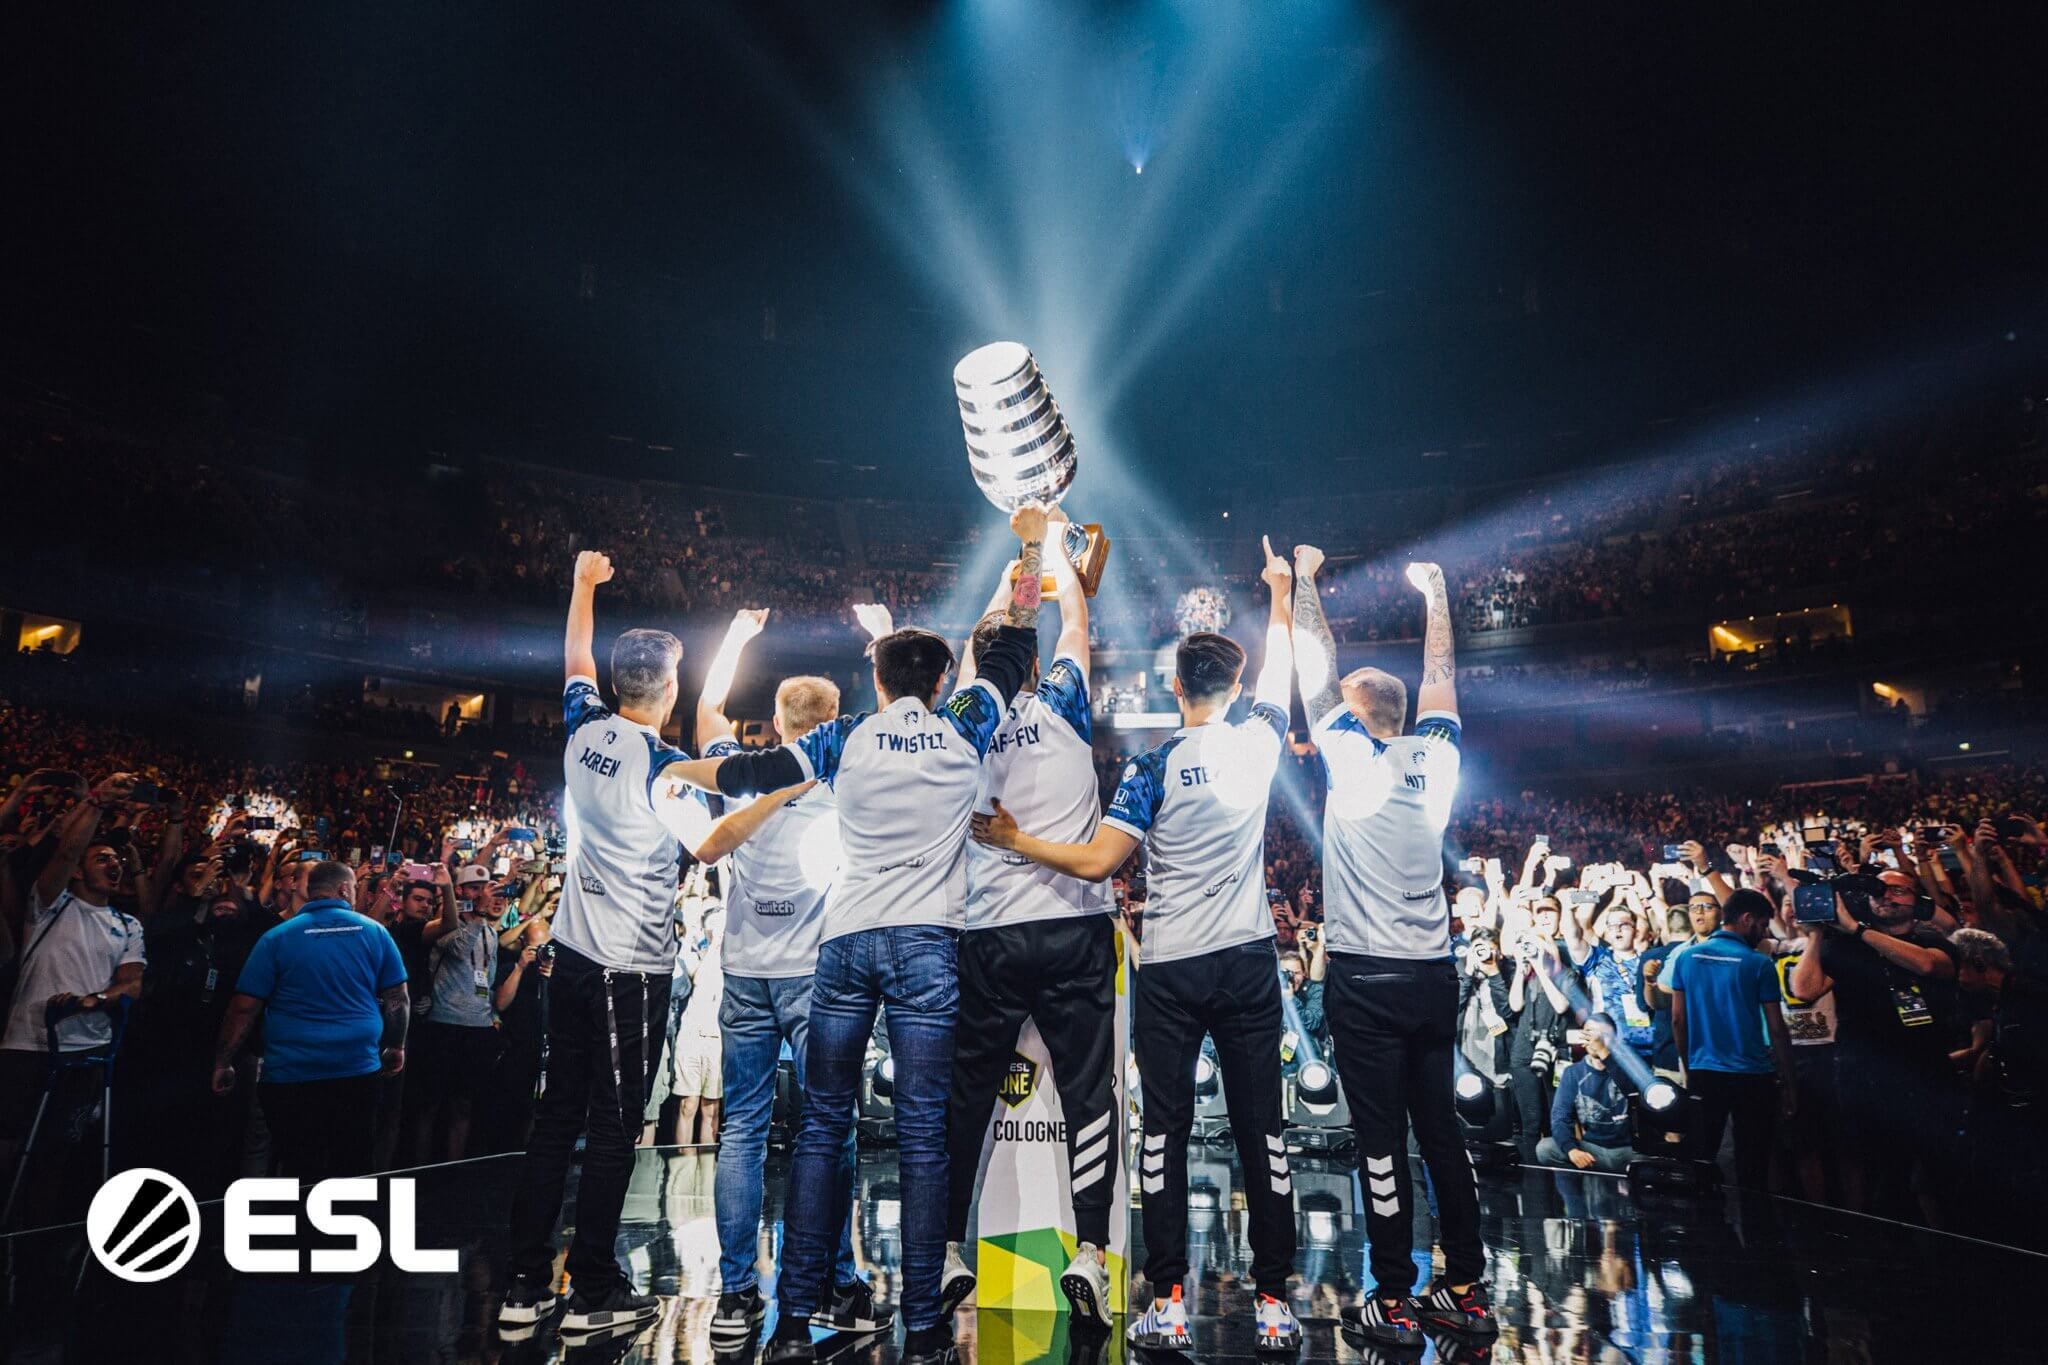 team-liquid-win-esl-one-cologne-2019